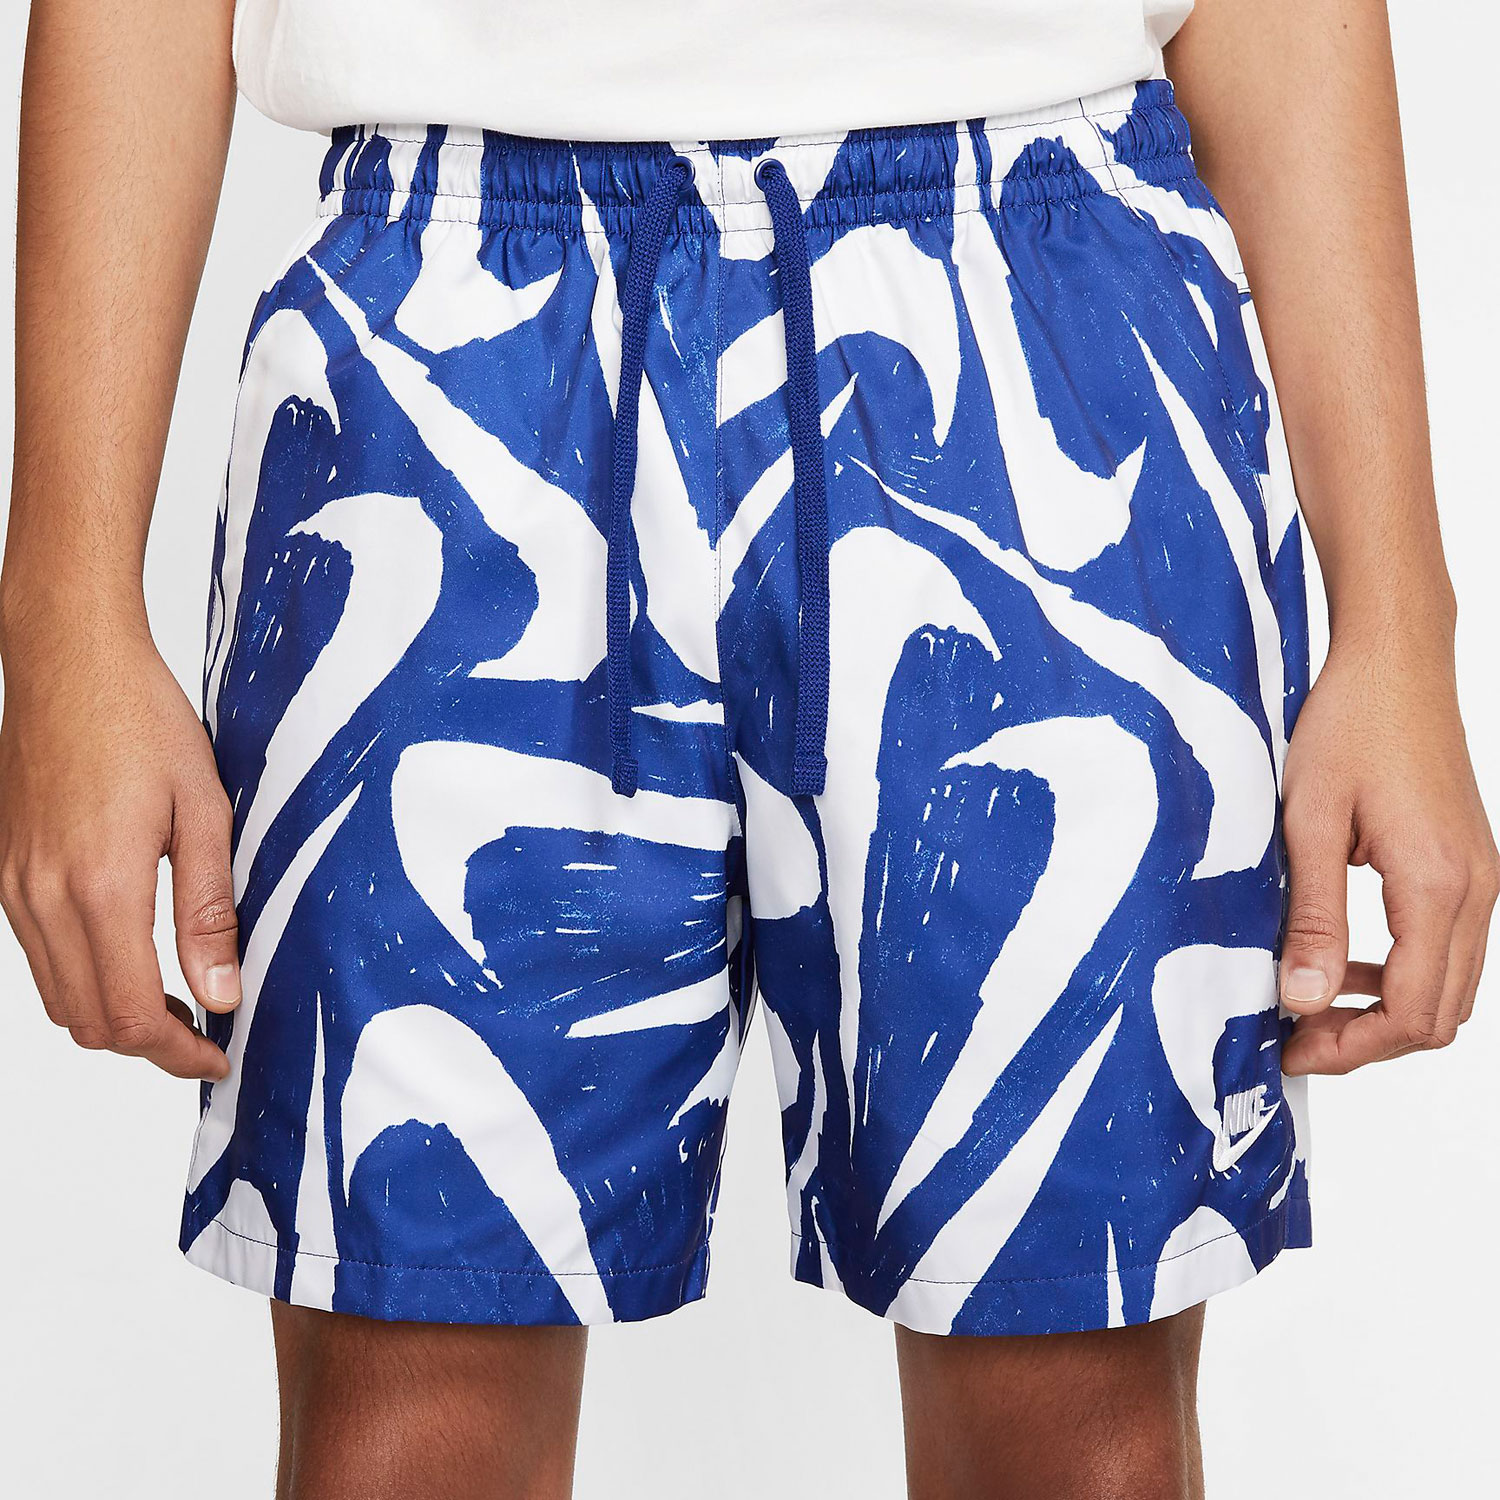 jordan-1-game-royal-toe-nike-shorts-match